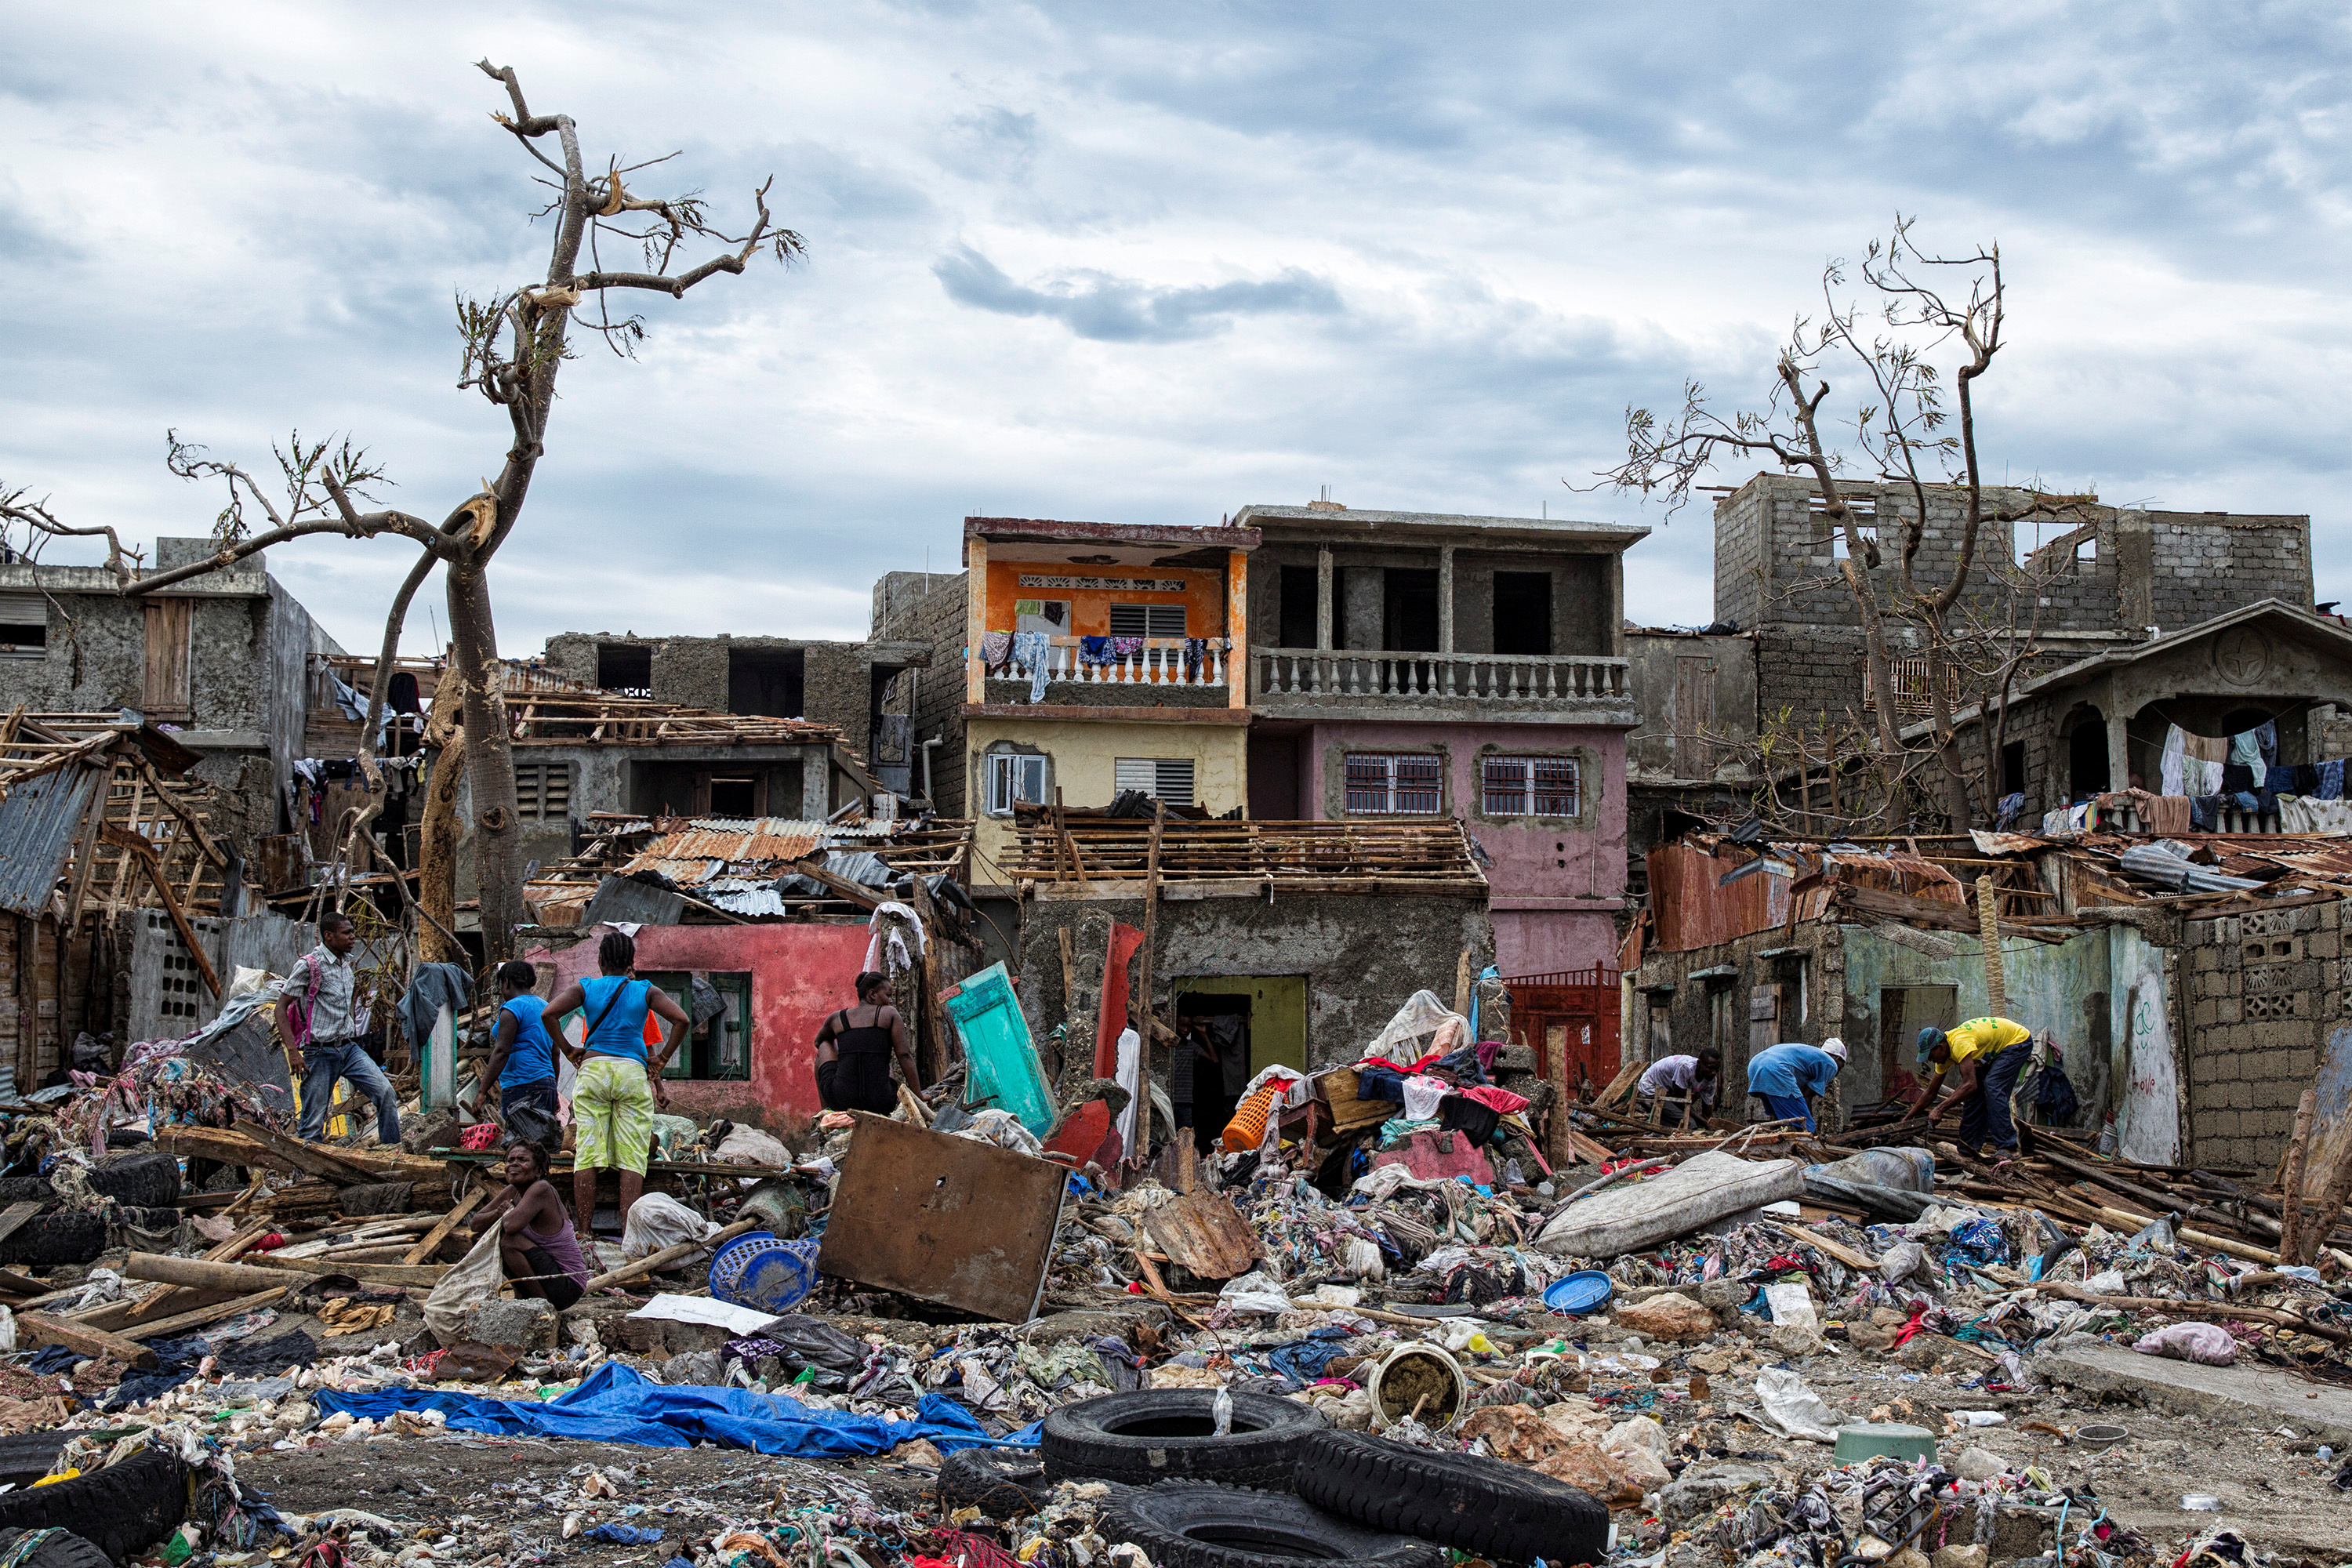 Clean up from Hurricane Matthew continues in Jeremie, Haiti, October 6, 2016. Picture taken October 6, 2016. Logan Abassi, courtesy of UN/MINUSTAH/Handout via REUTERS ATTENTION EDITORS - THIS IMAGE WAS PROVIDED BY A THIRD PARTY. EDITORIAL USE ONLY. NO RESALES. NO ARCHIVE. - RTSRAZF